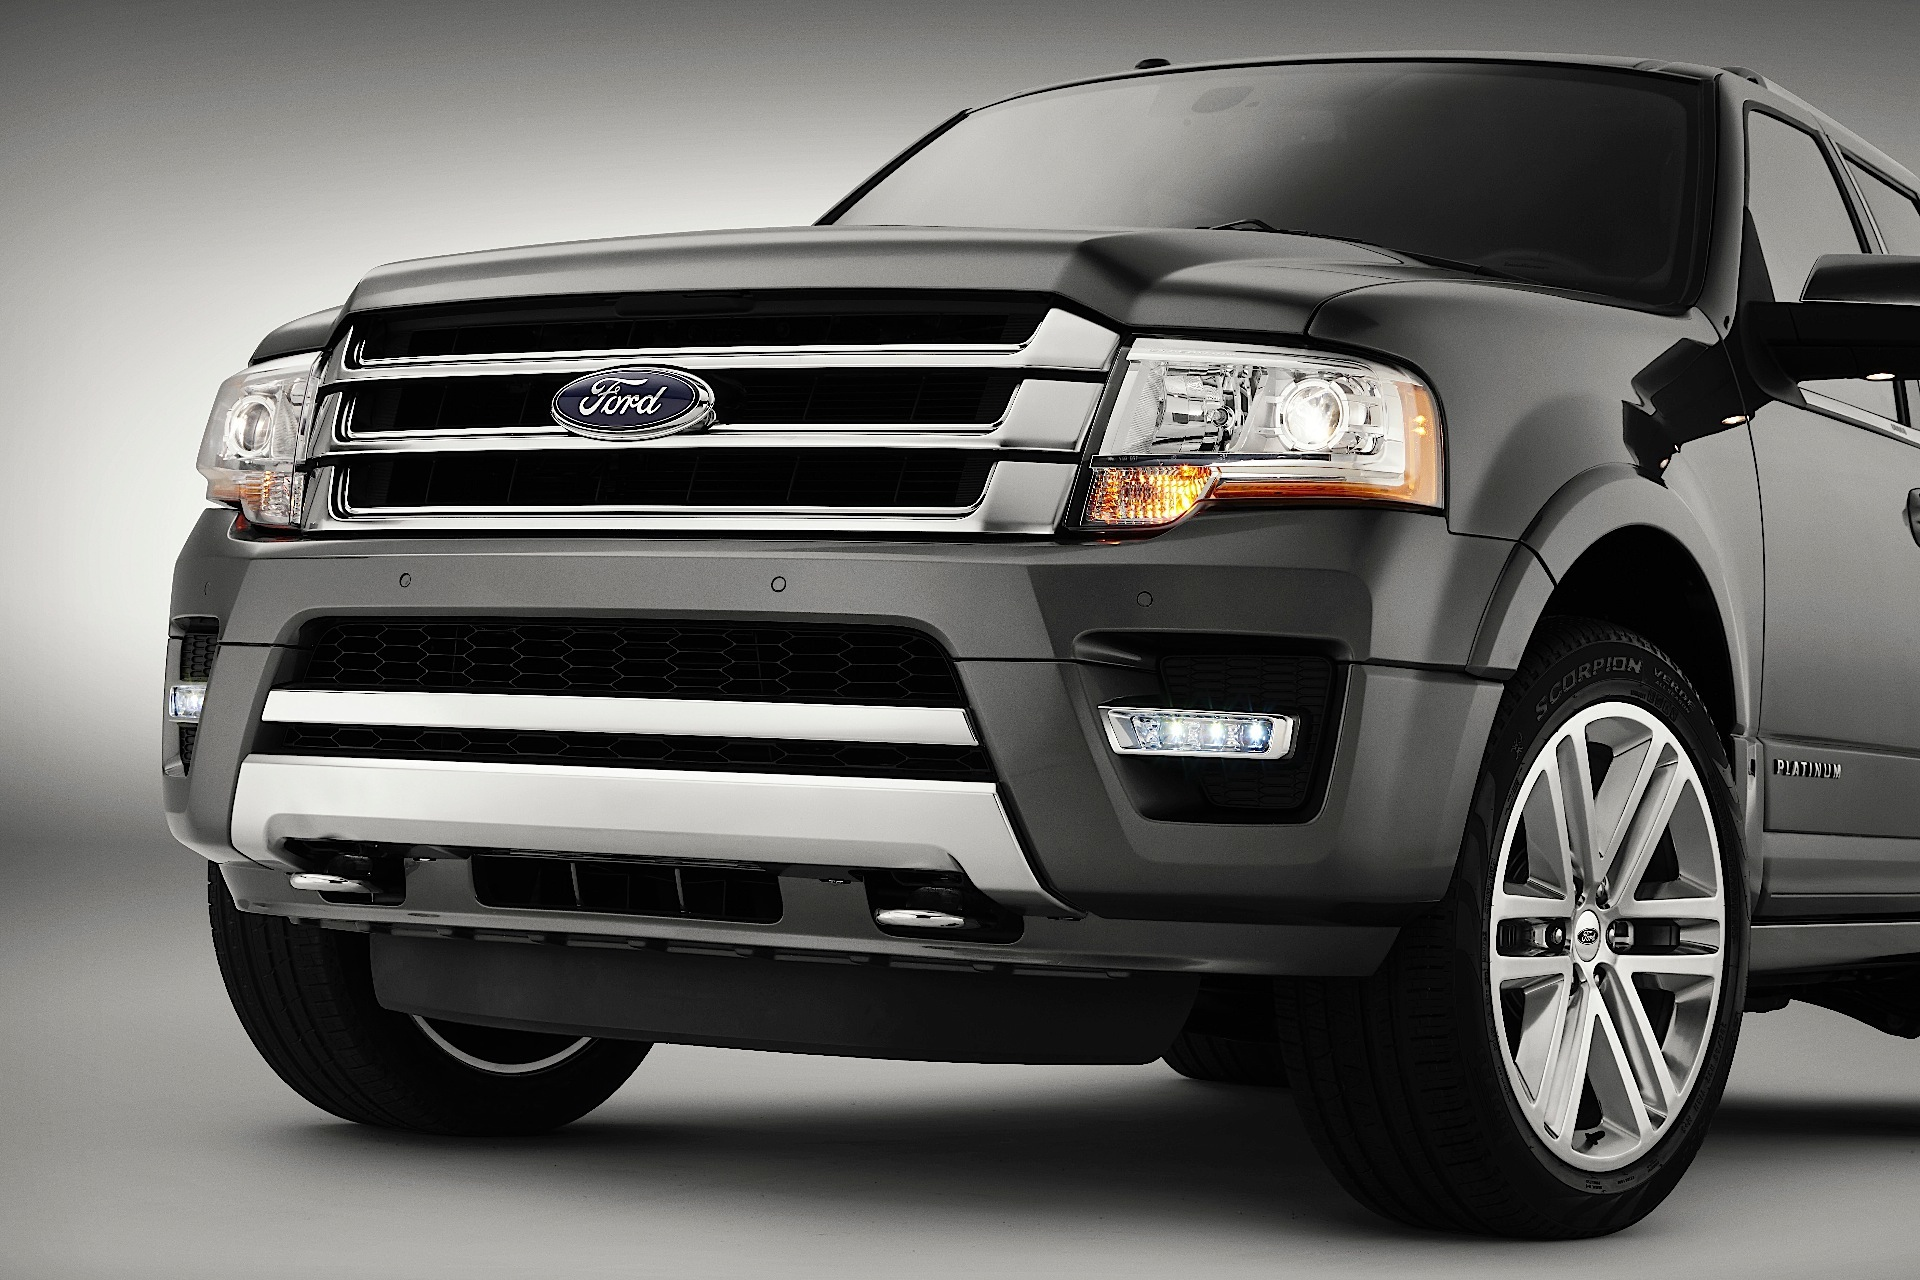 Ford expedition 2014 present